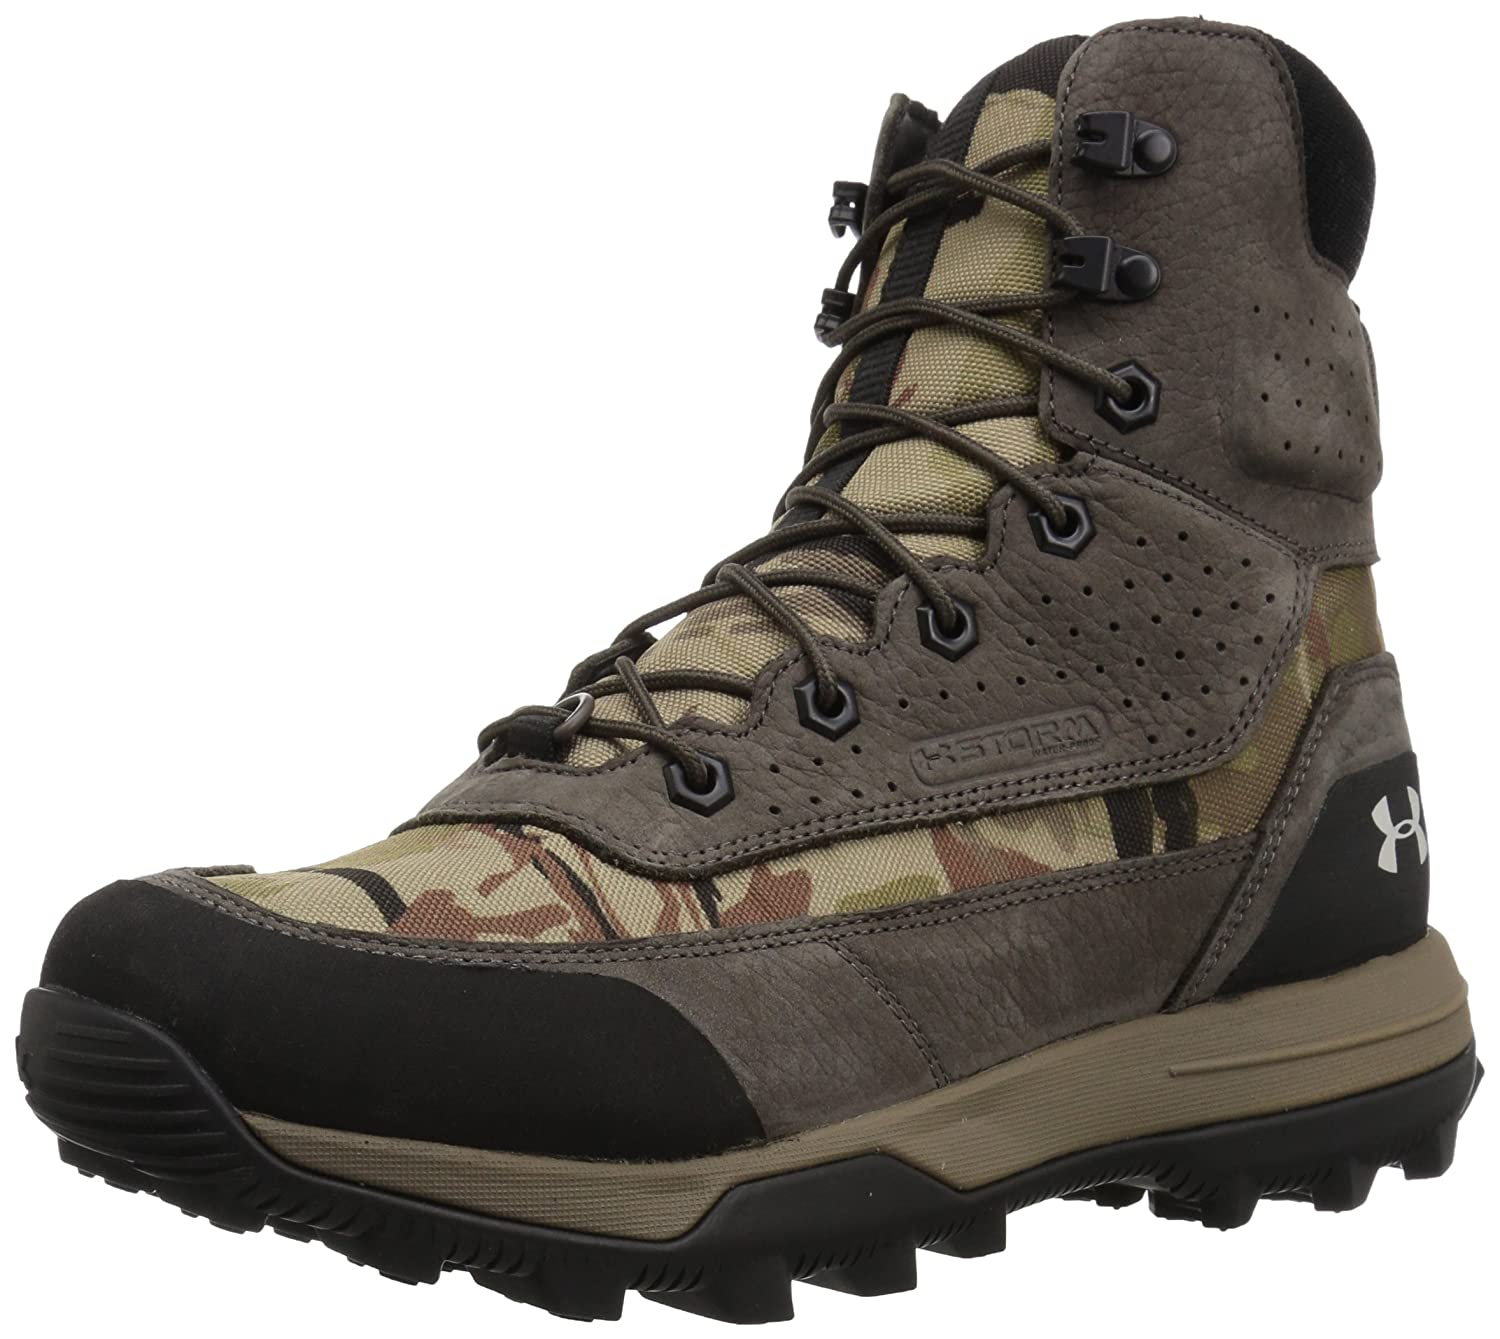 Under Armour Women's SF Bozeman 2.0 Hiking Boot B01MYO51Q2 6.5 M US|Ridge Reaper Camo Ba (900)/Maverick Brown